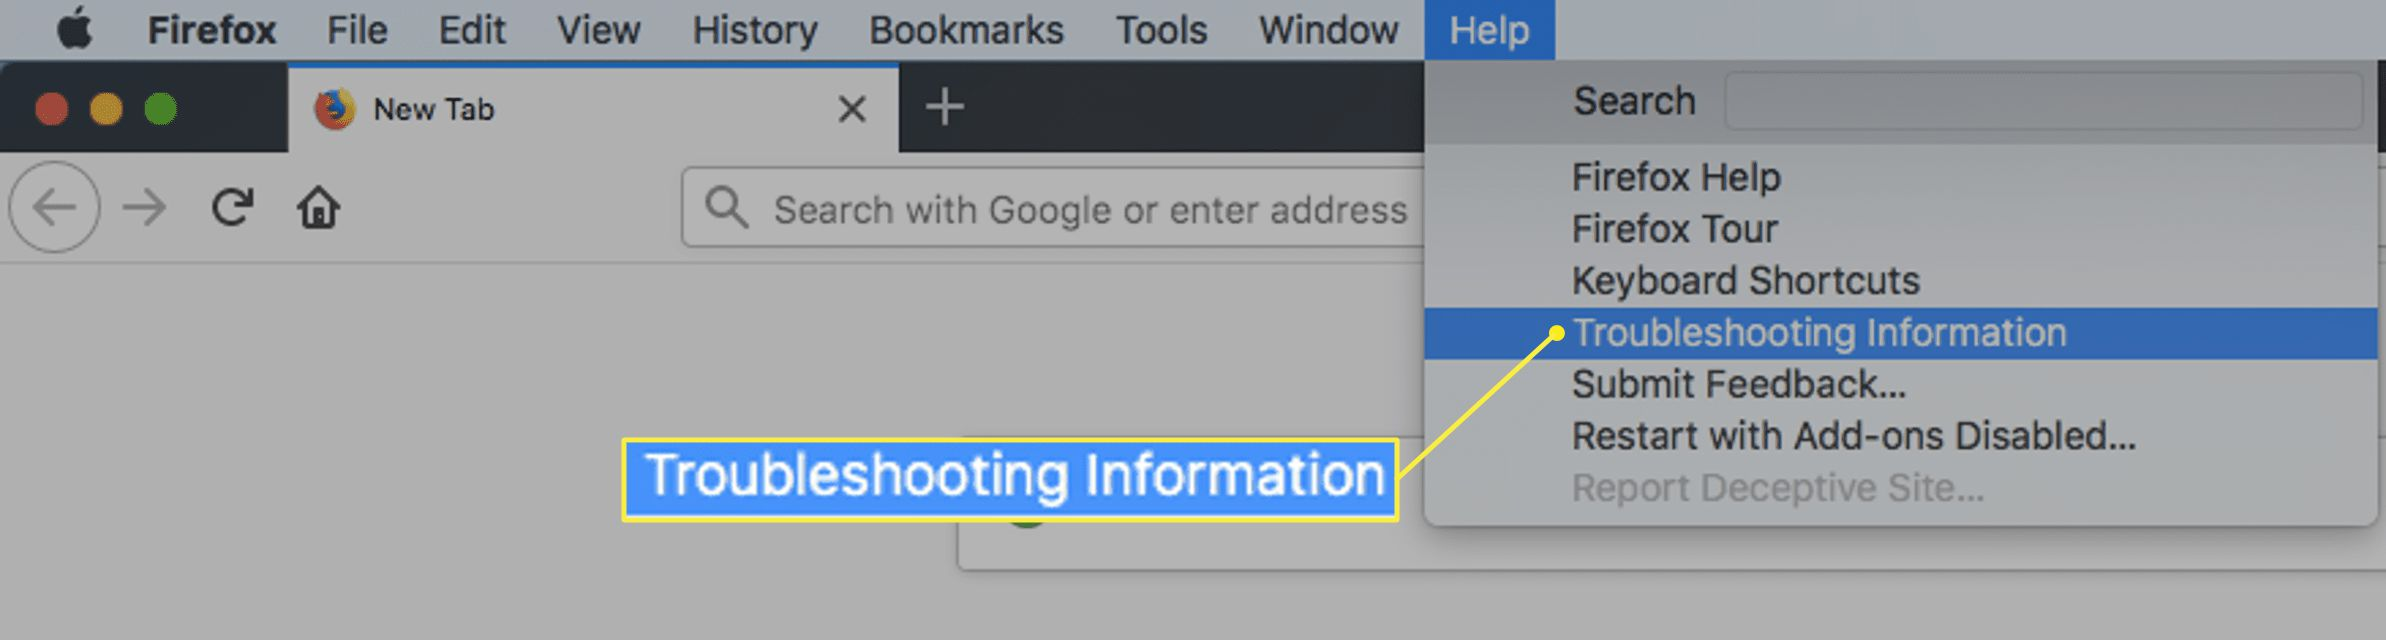 Firefox Help menu in macOS with Troubleshooting Information highlighted